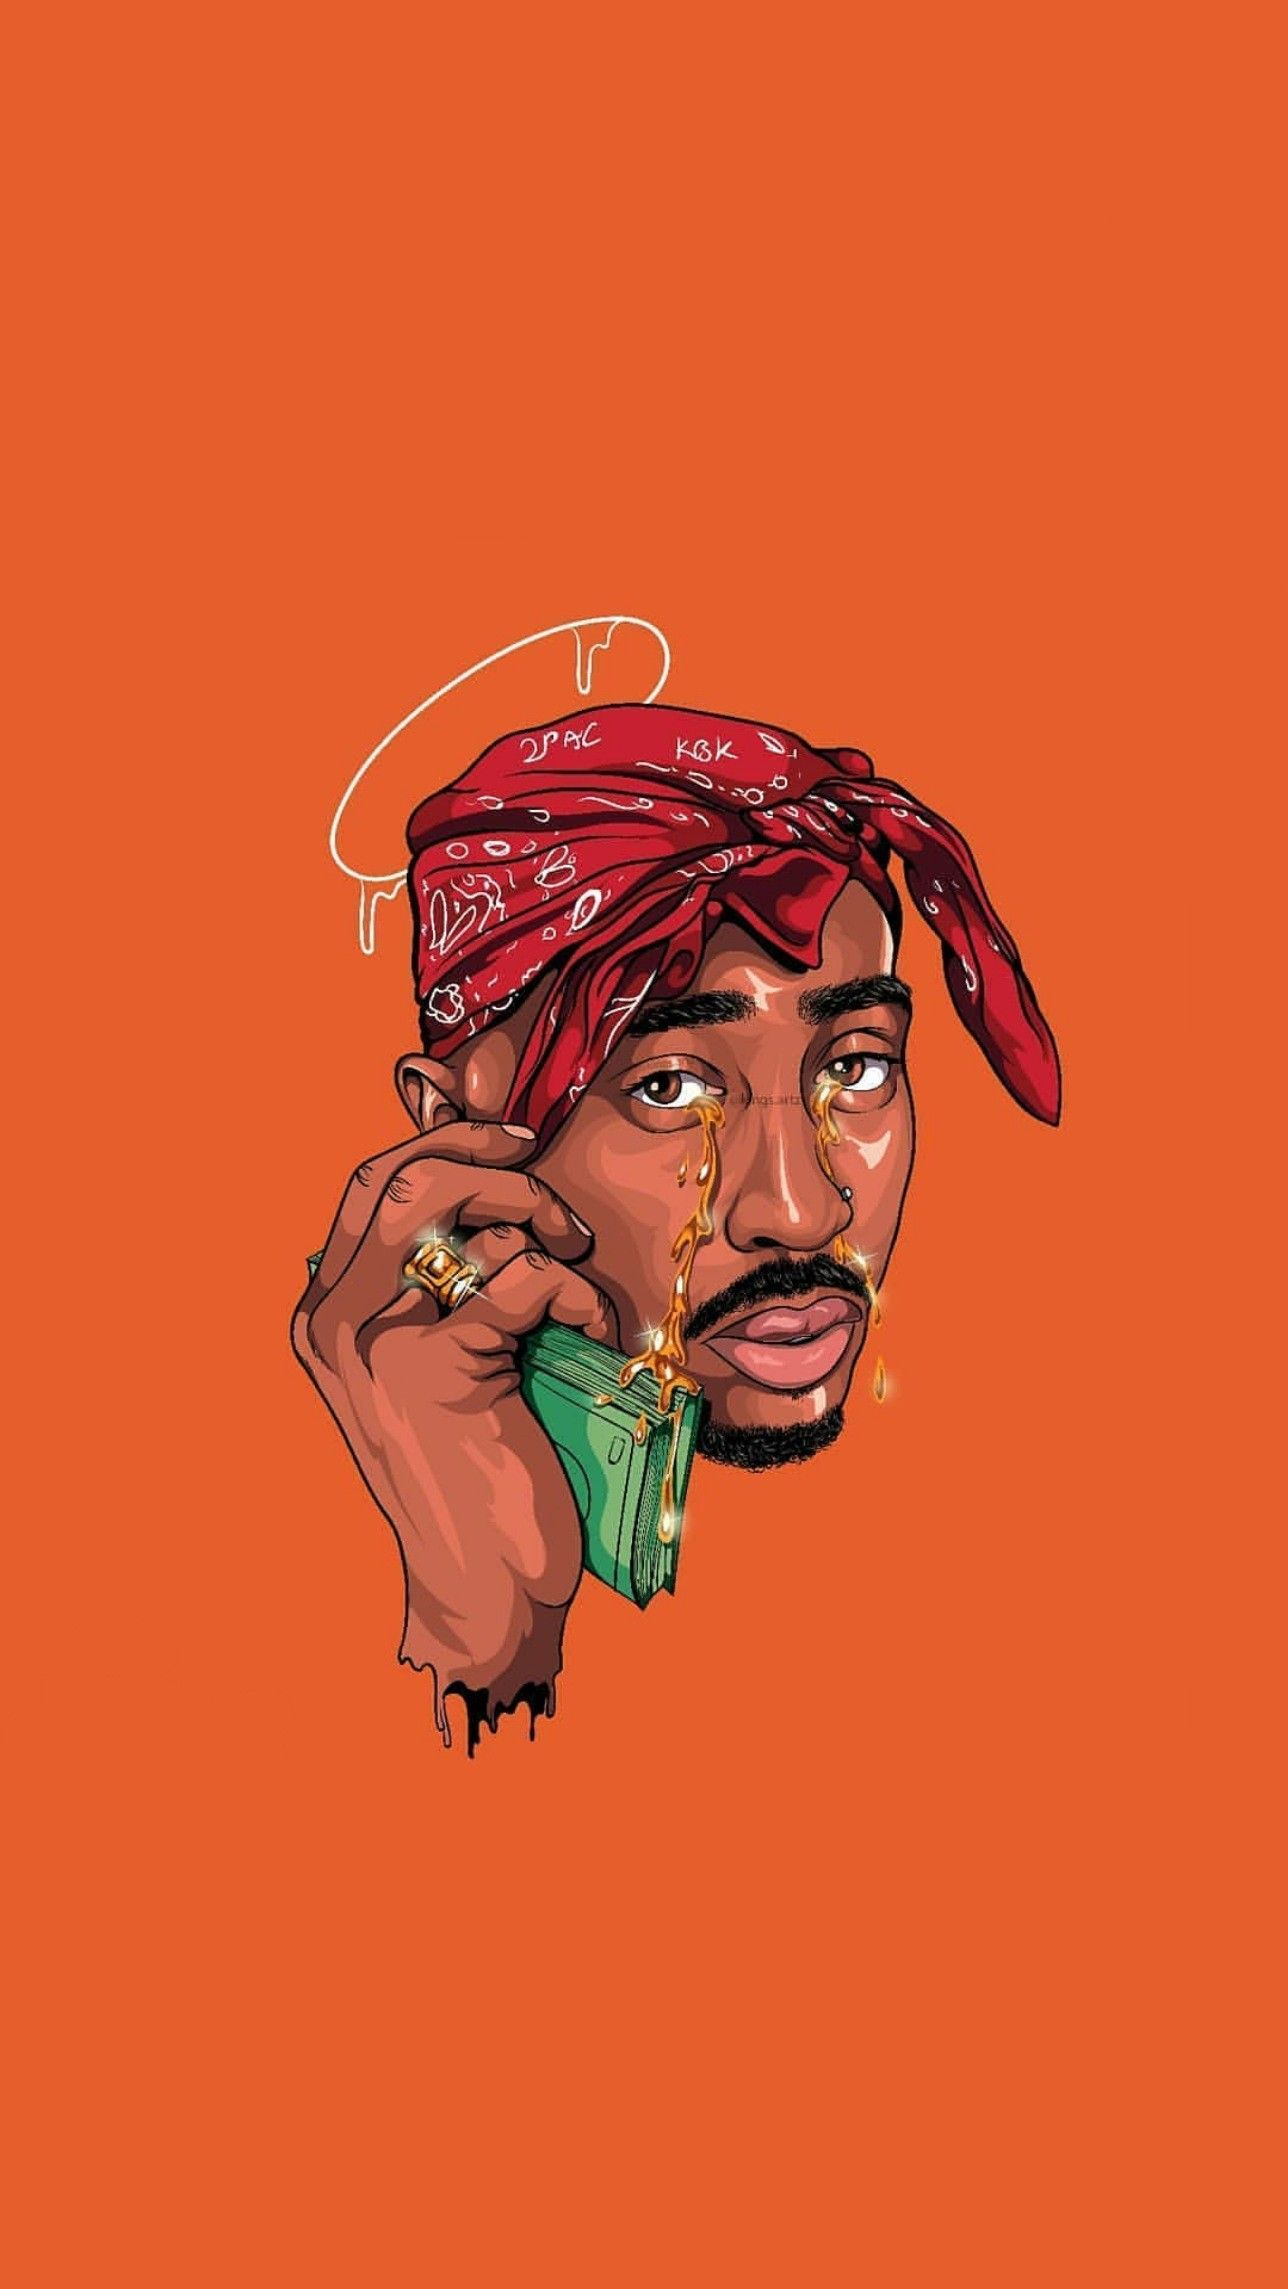 Transform Your iPhone With Great tupac wallpaper Picture designs